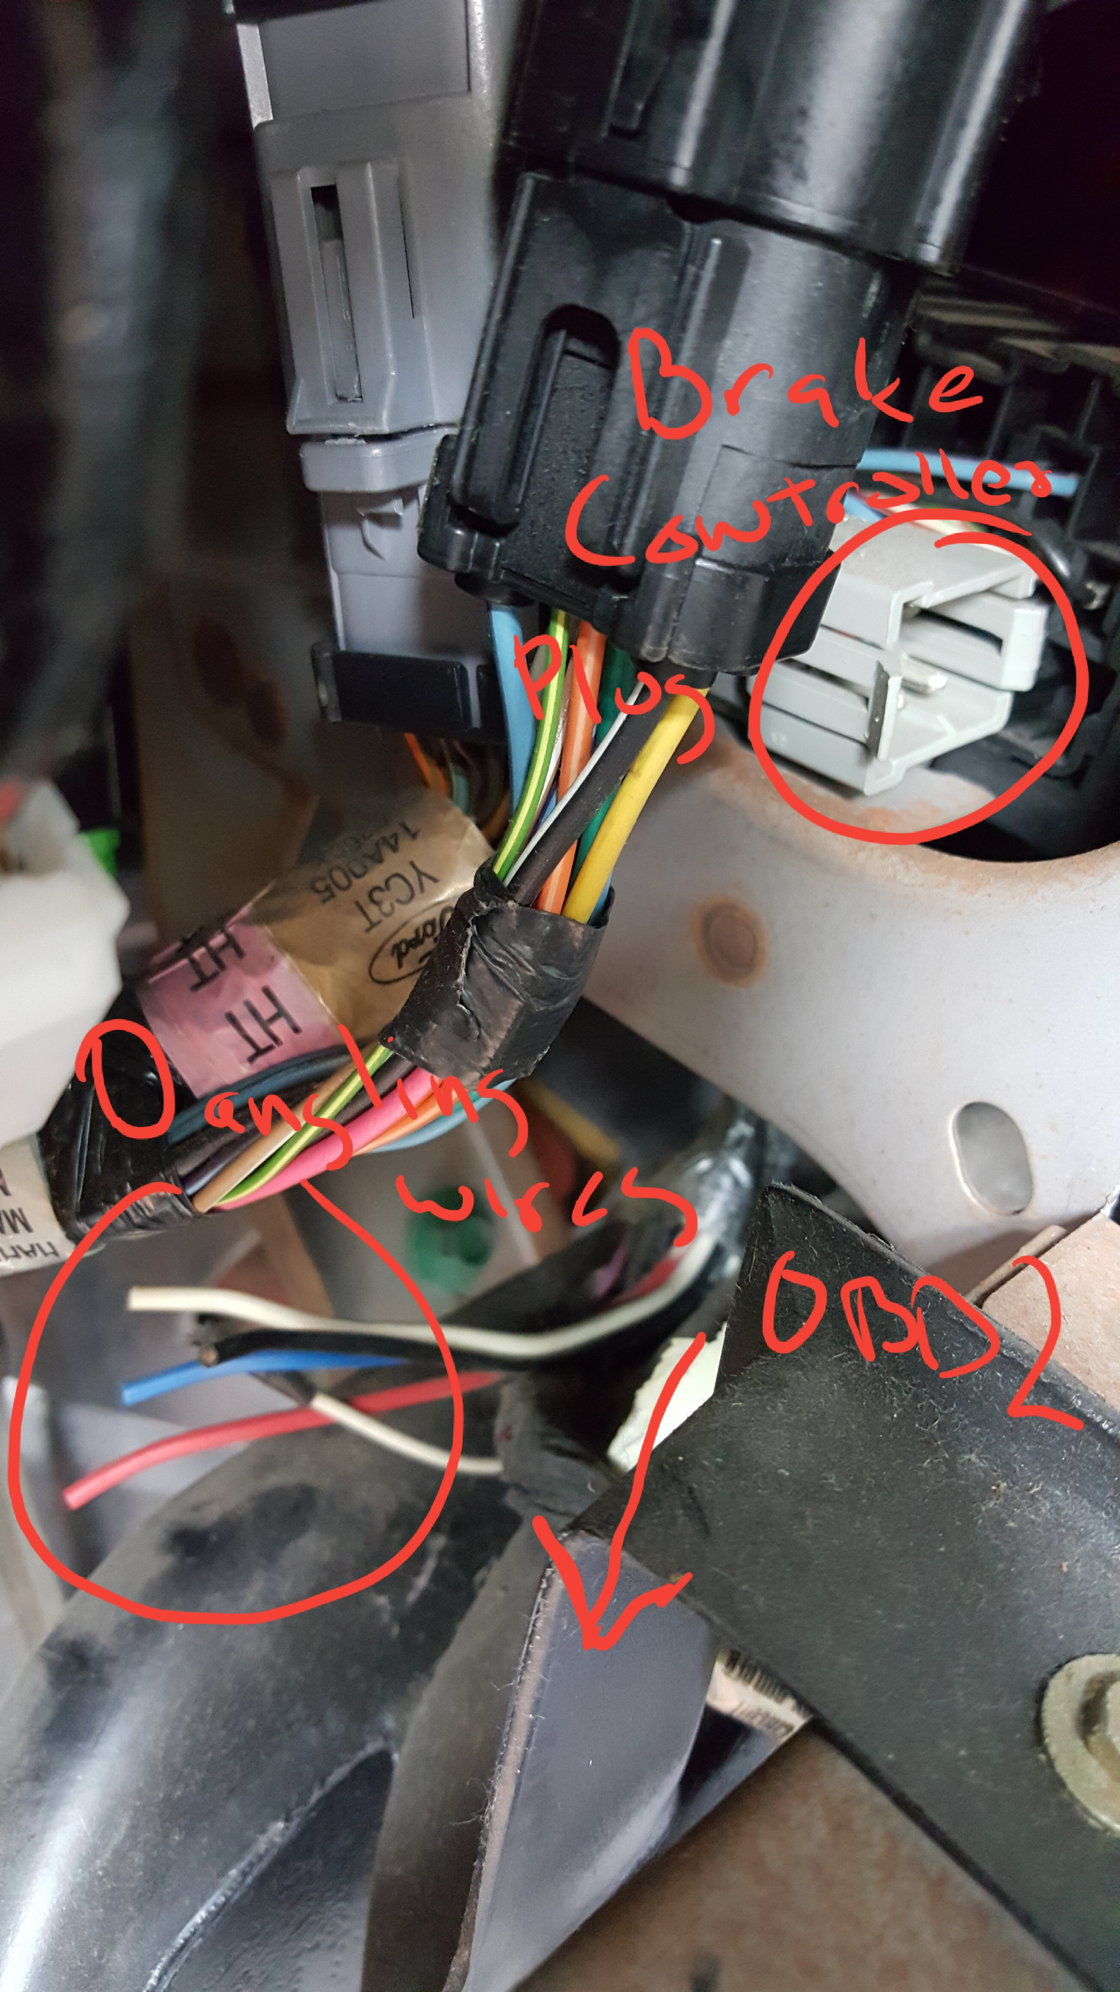 ford brake controller wiring | gold-lesson wiring diagram word -  gold-lesson.wizex.eu  wizex.eu